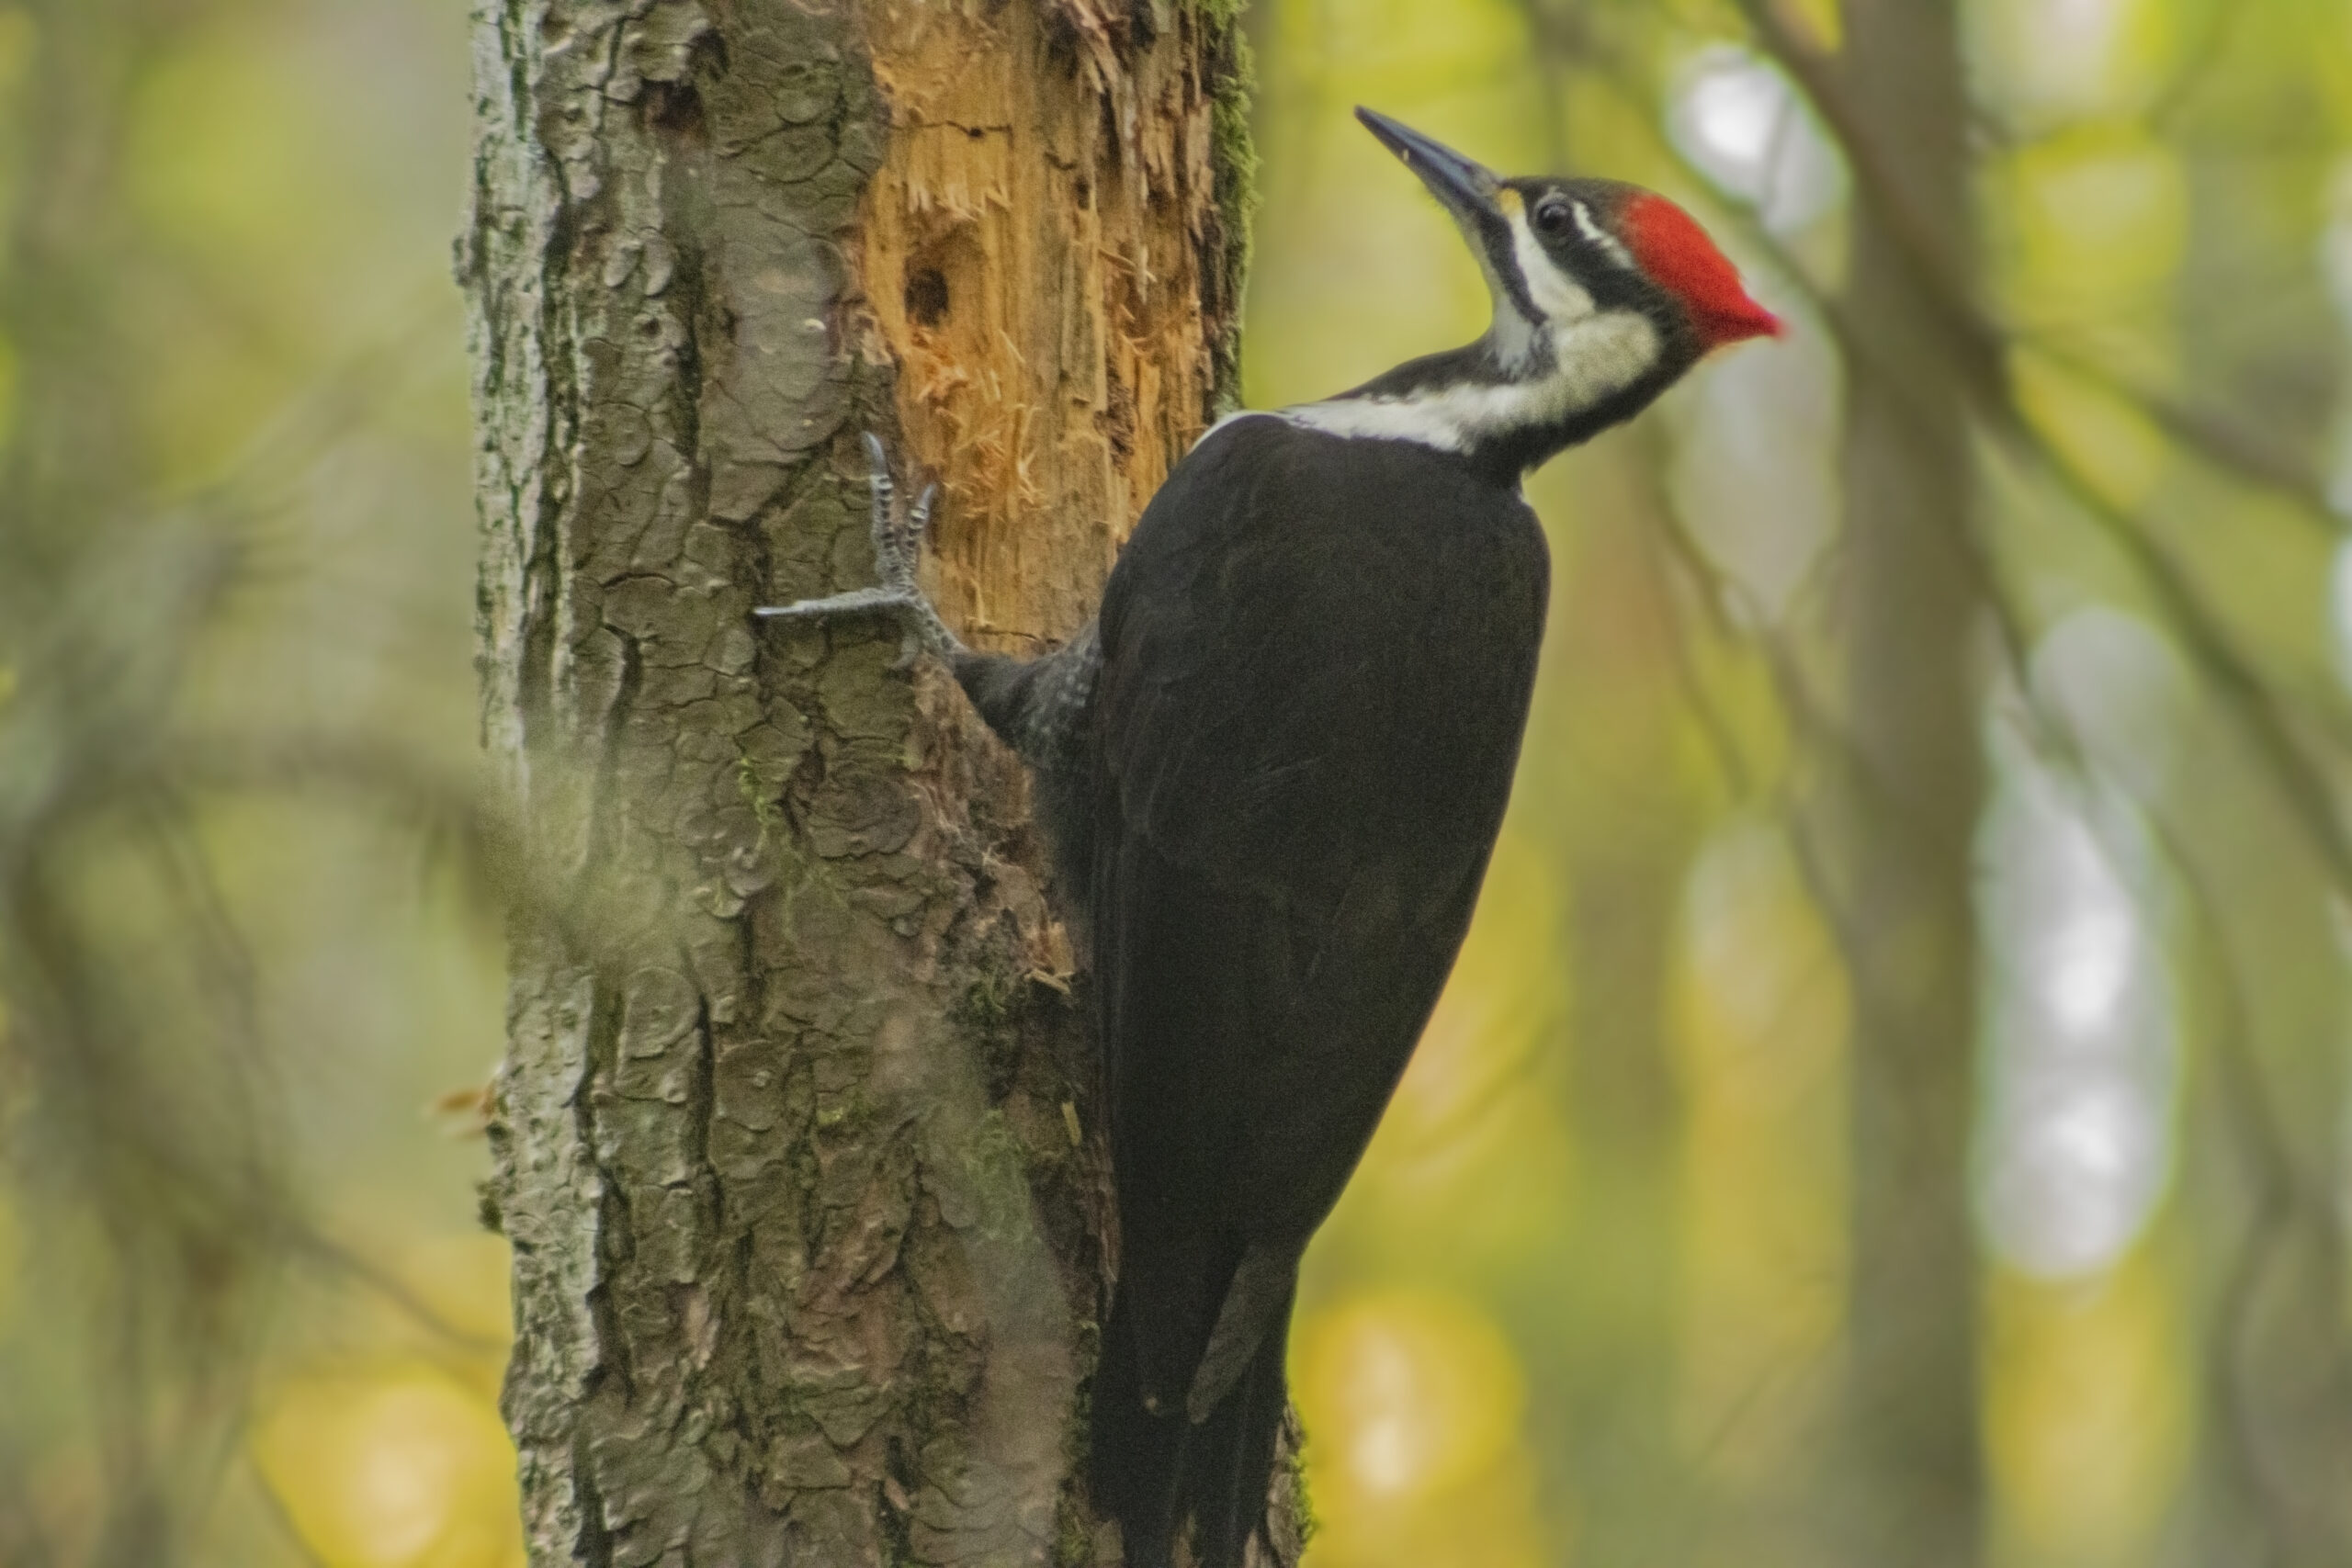 Female Pileated Woodpecker in the Watershed, April 19, 2021